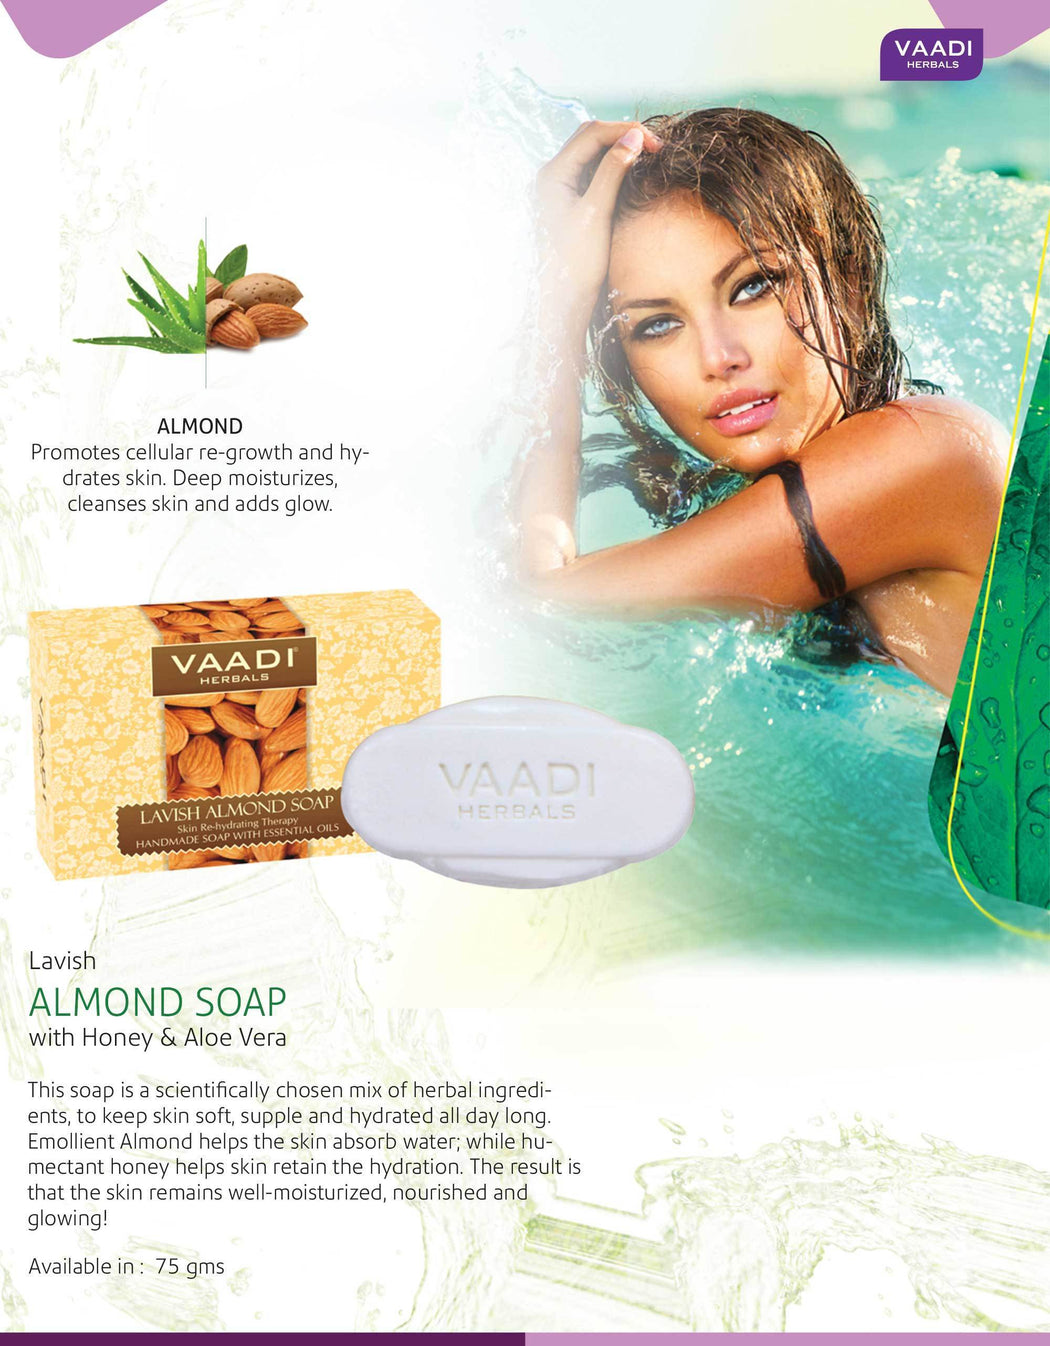 Rehydrating Organic Lavish Almond Soap with Honey & Aloe Vera - Improves Complexion - Keeps Skin Nourished (12 x 75 gms / 2.7 oz)